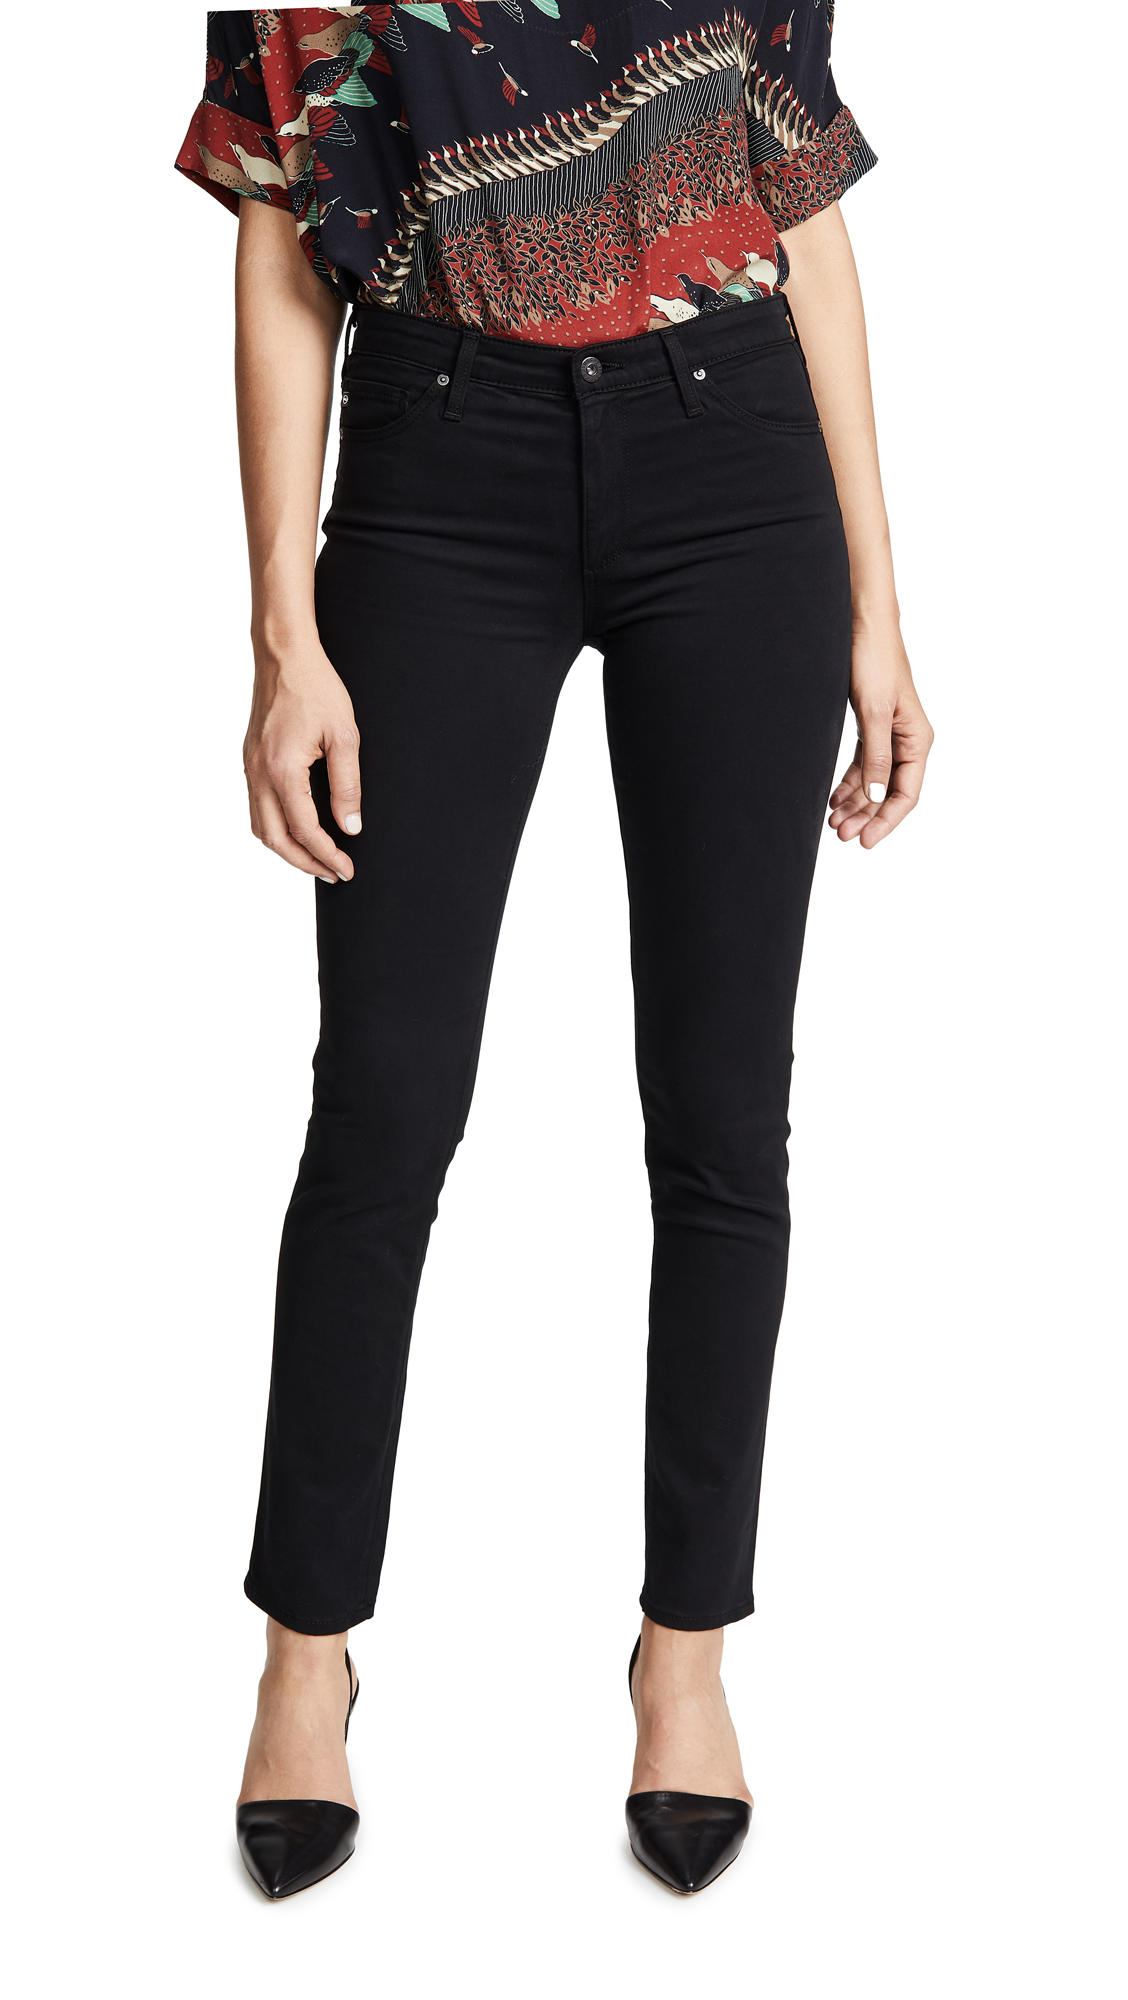 AG The Prima Sateen Jeans - Super Black